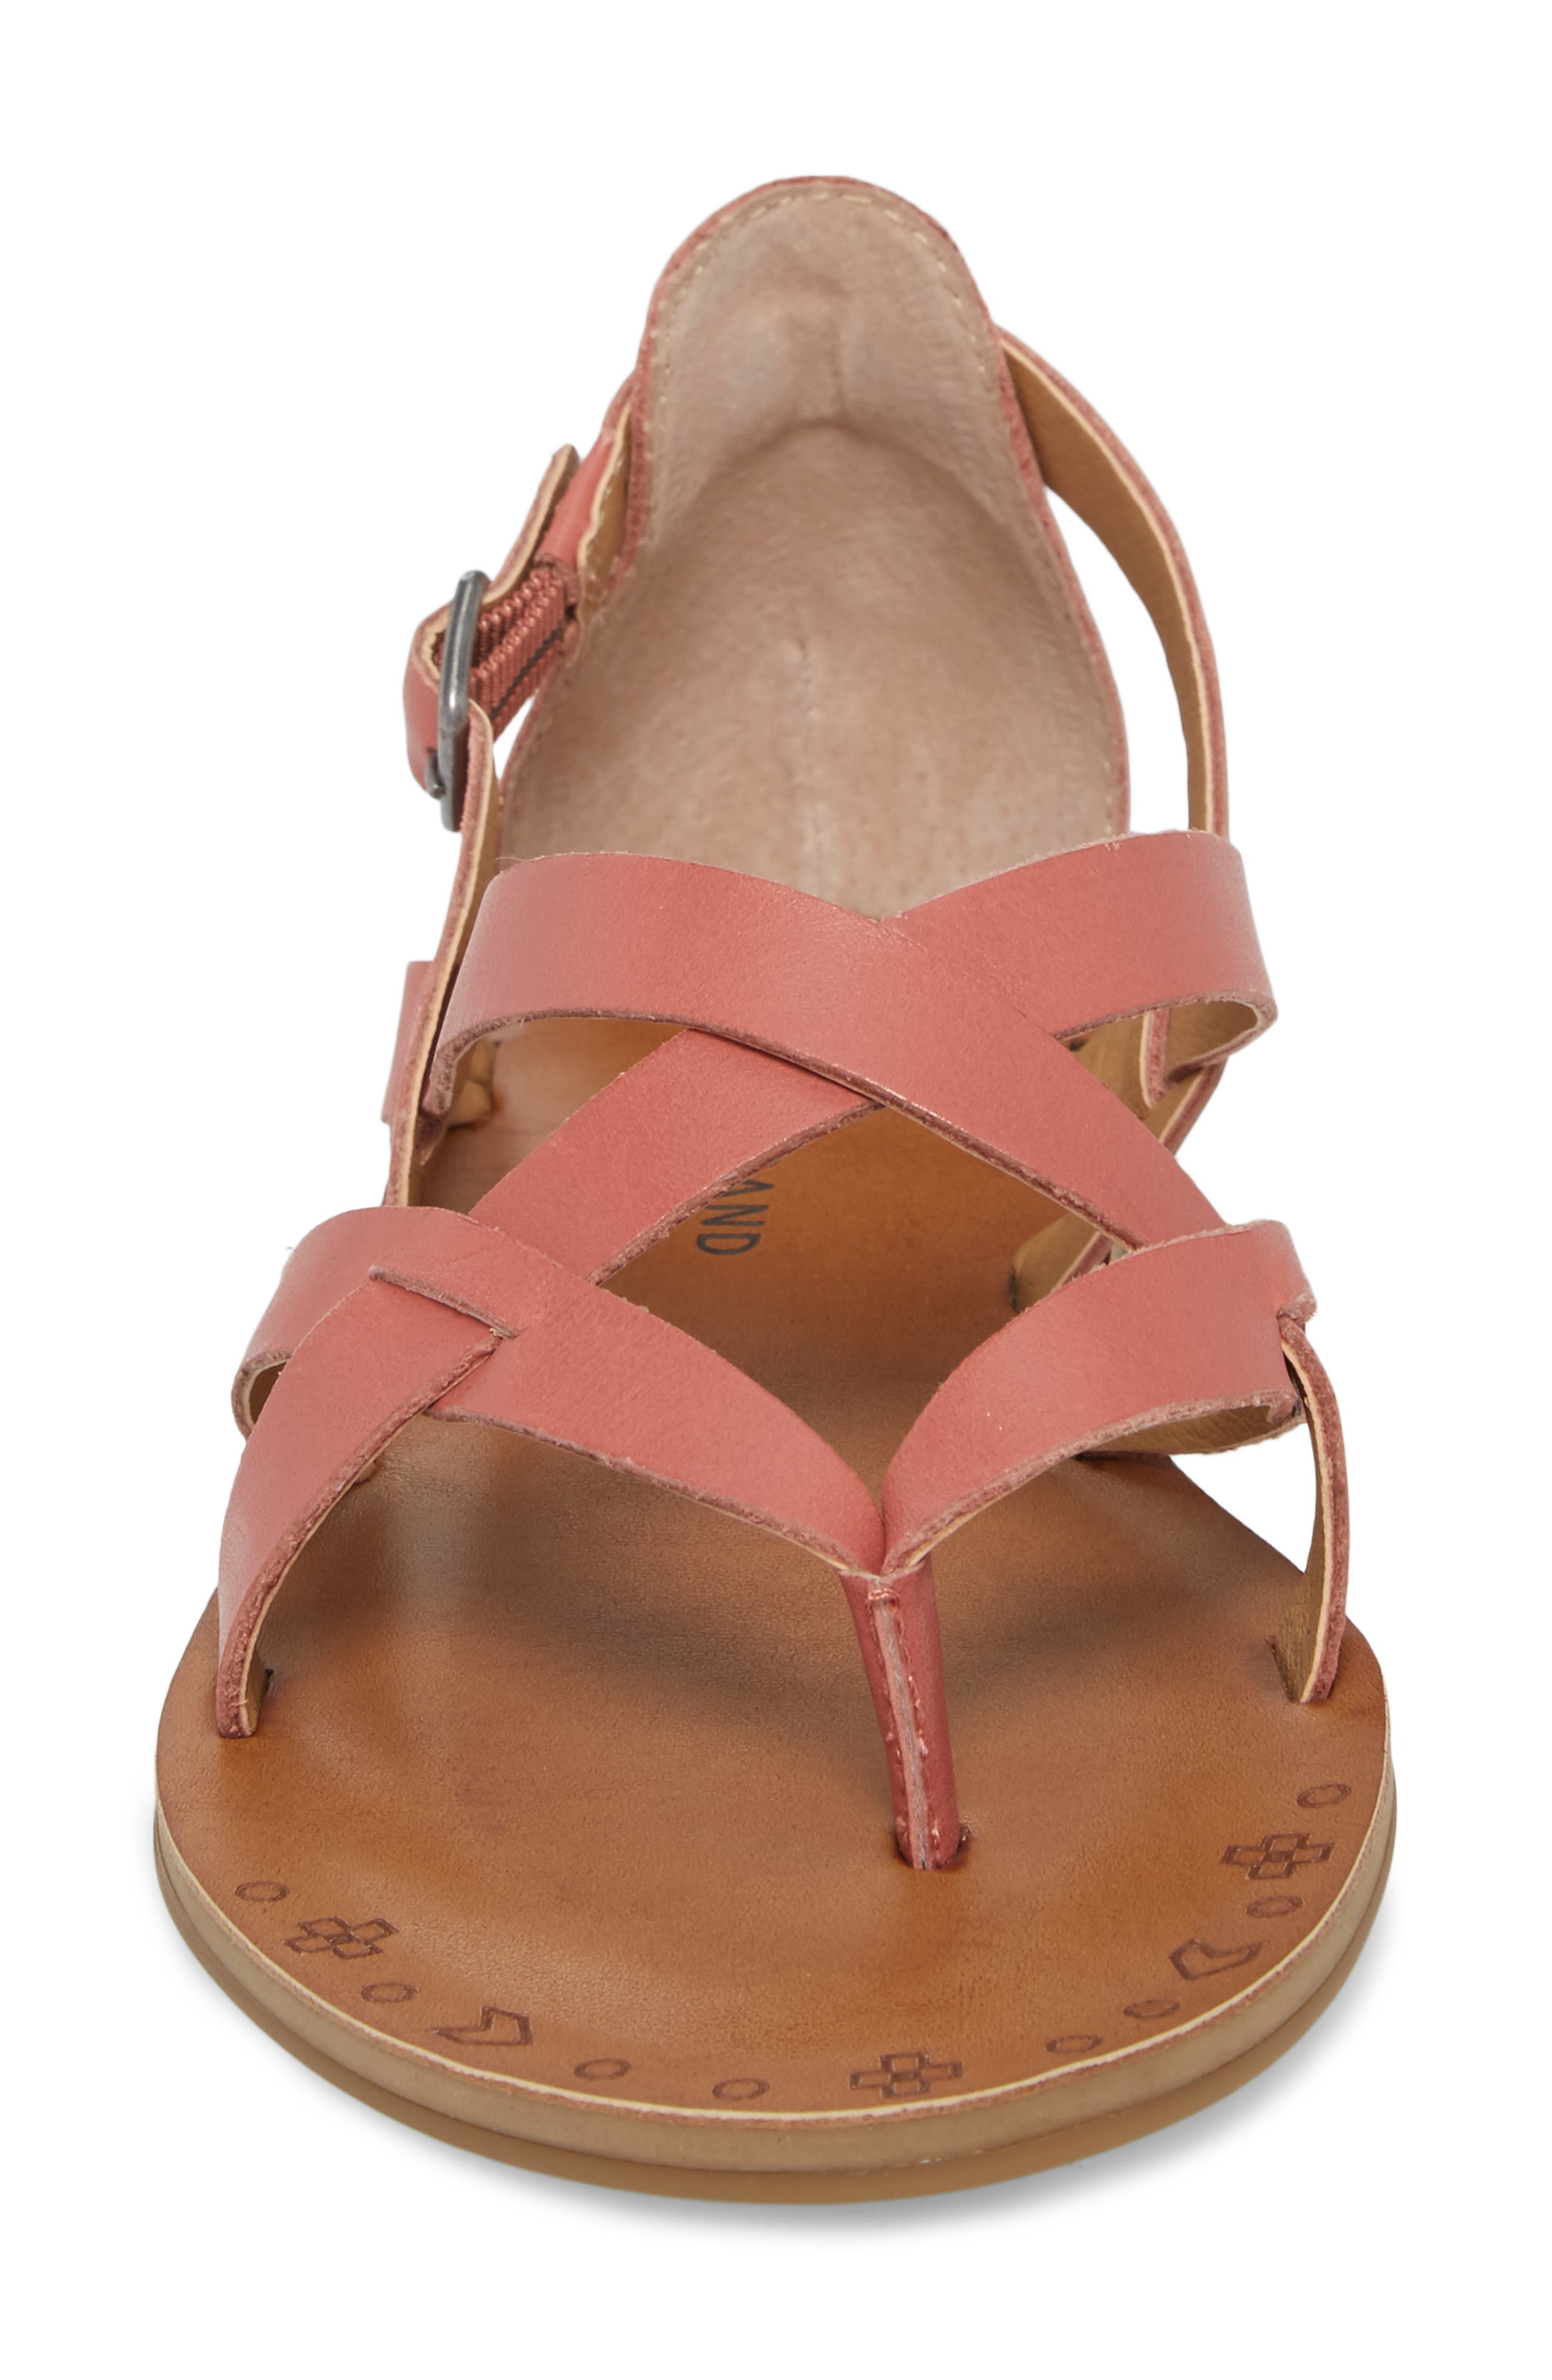 Ainsley Flat Sandal,                             Alternate thumbnail 4, color,                             Canyon Rose Leather